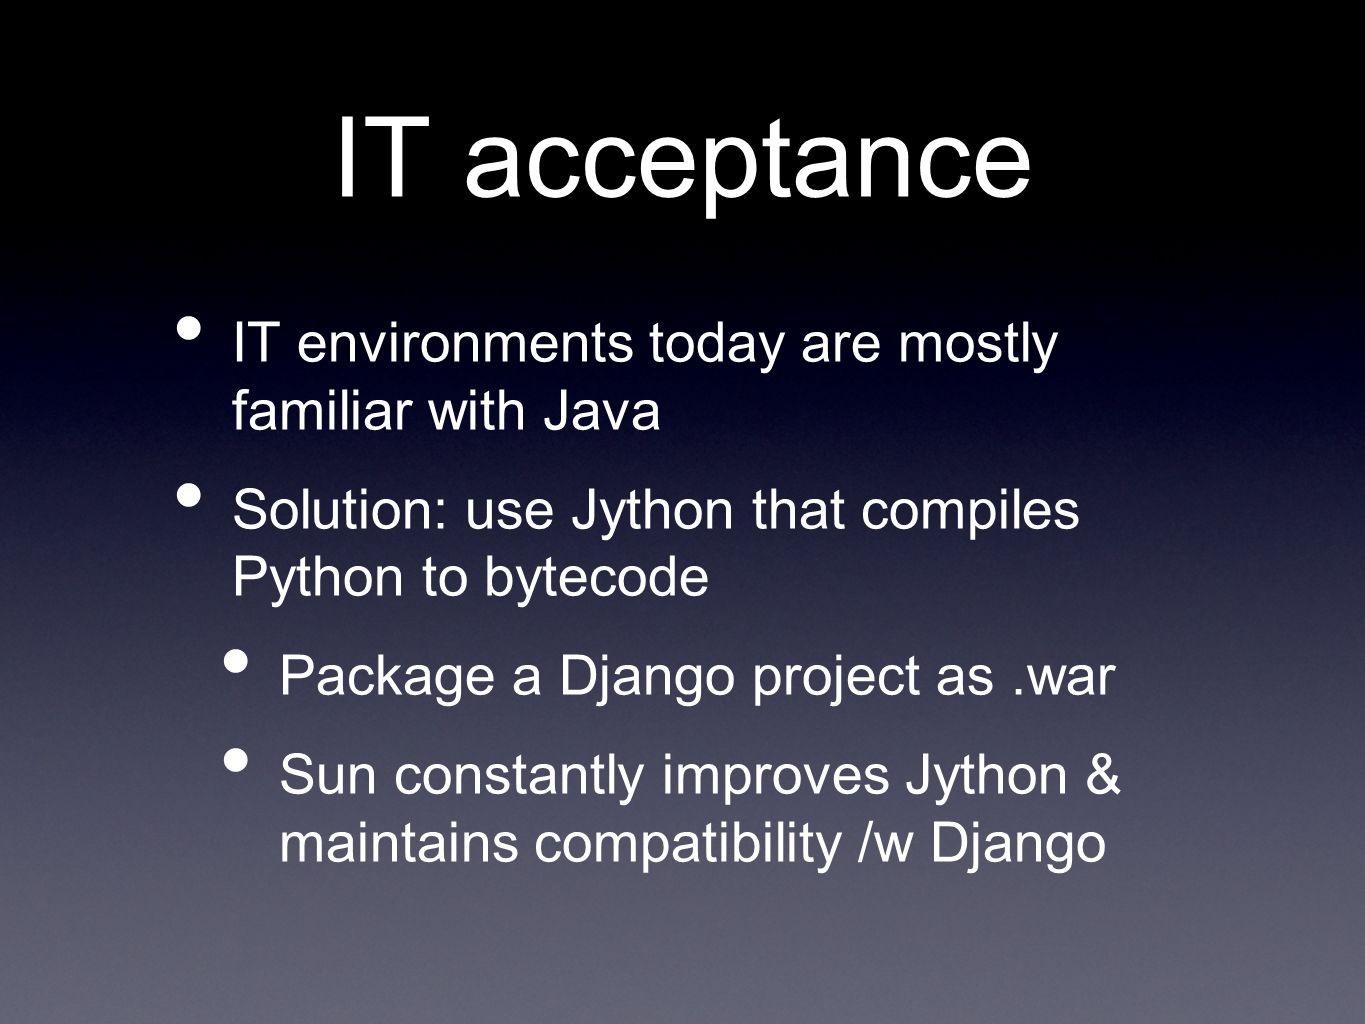 IT acceptance IT environments today are mostly familiar with Java Solution: use Jython that compiles Python to bytecode Package a Django project as.war Sun constantly improves Jython & maintains compatibility /w Django